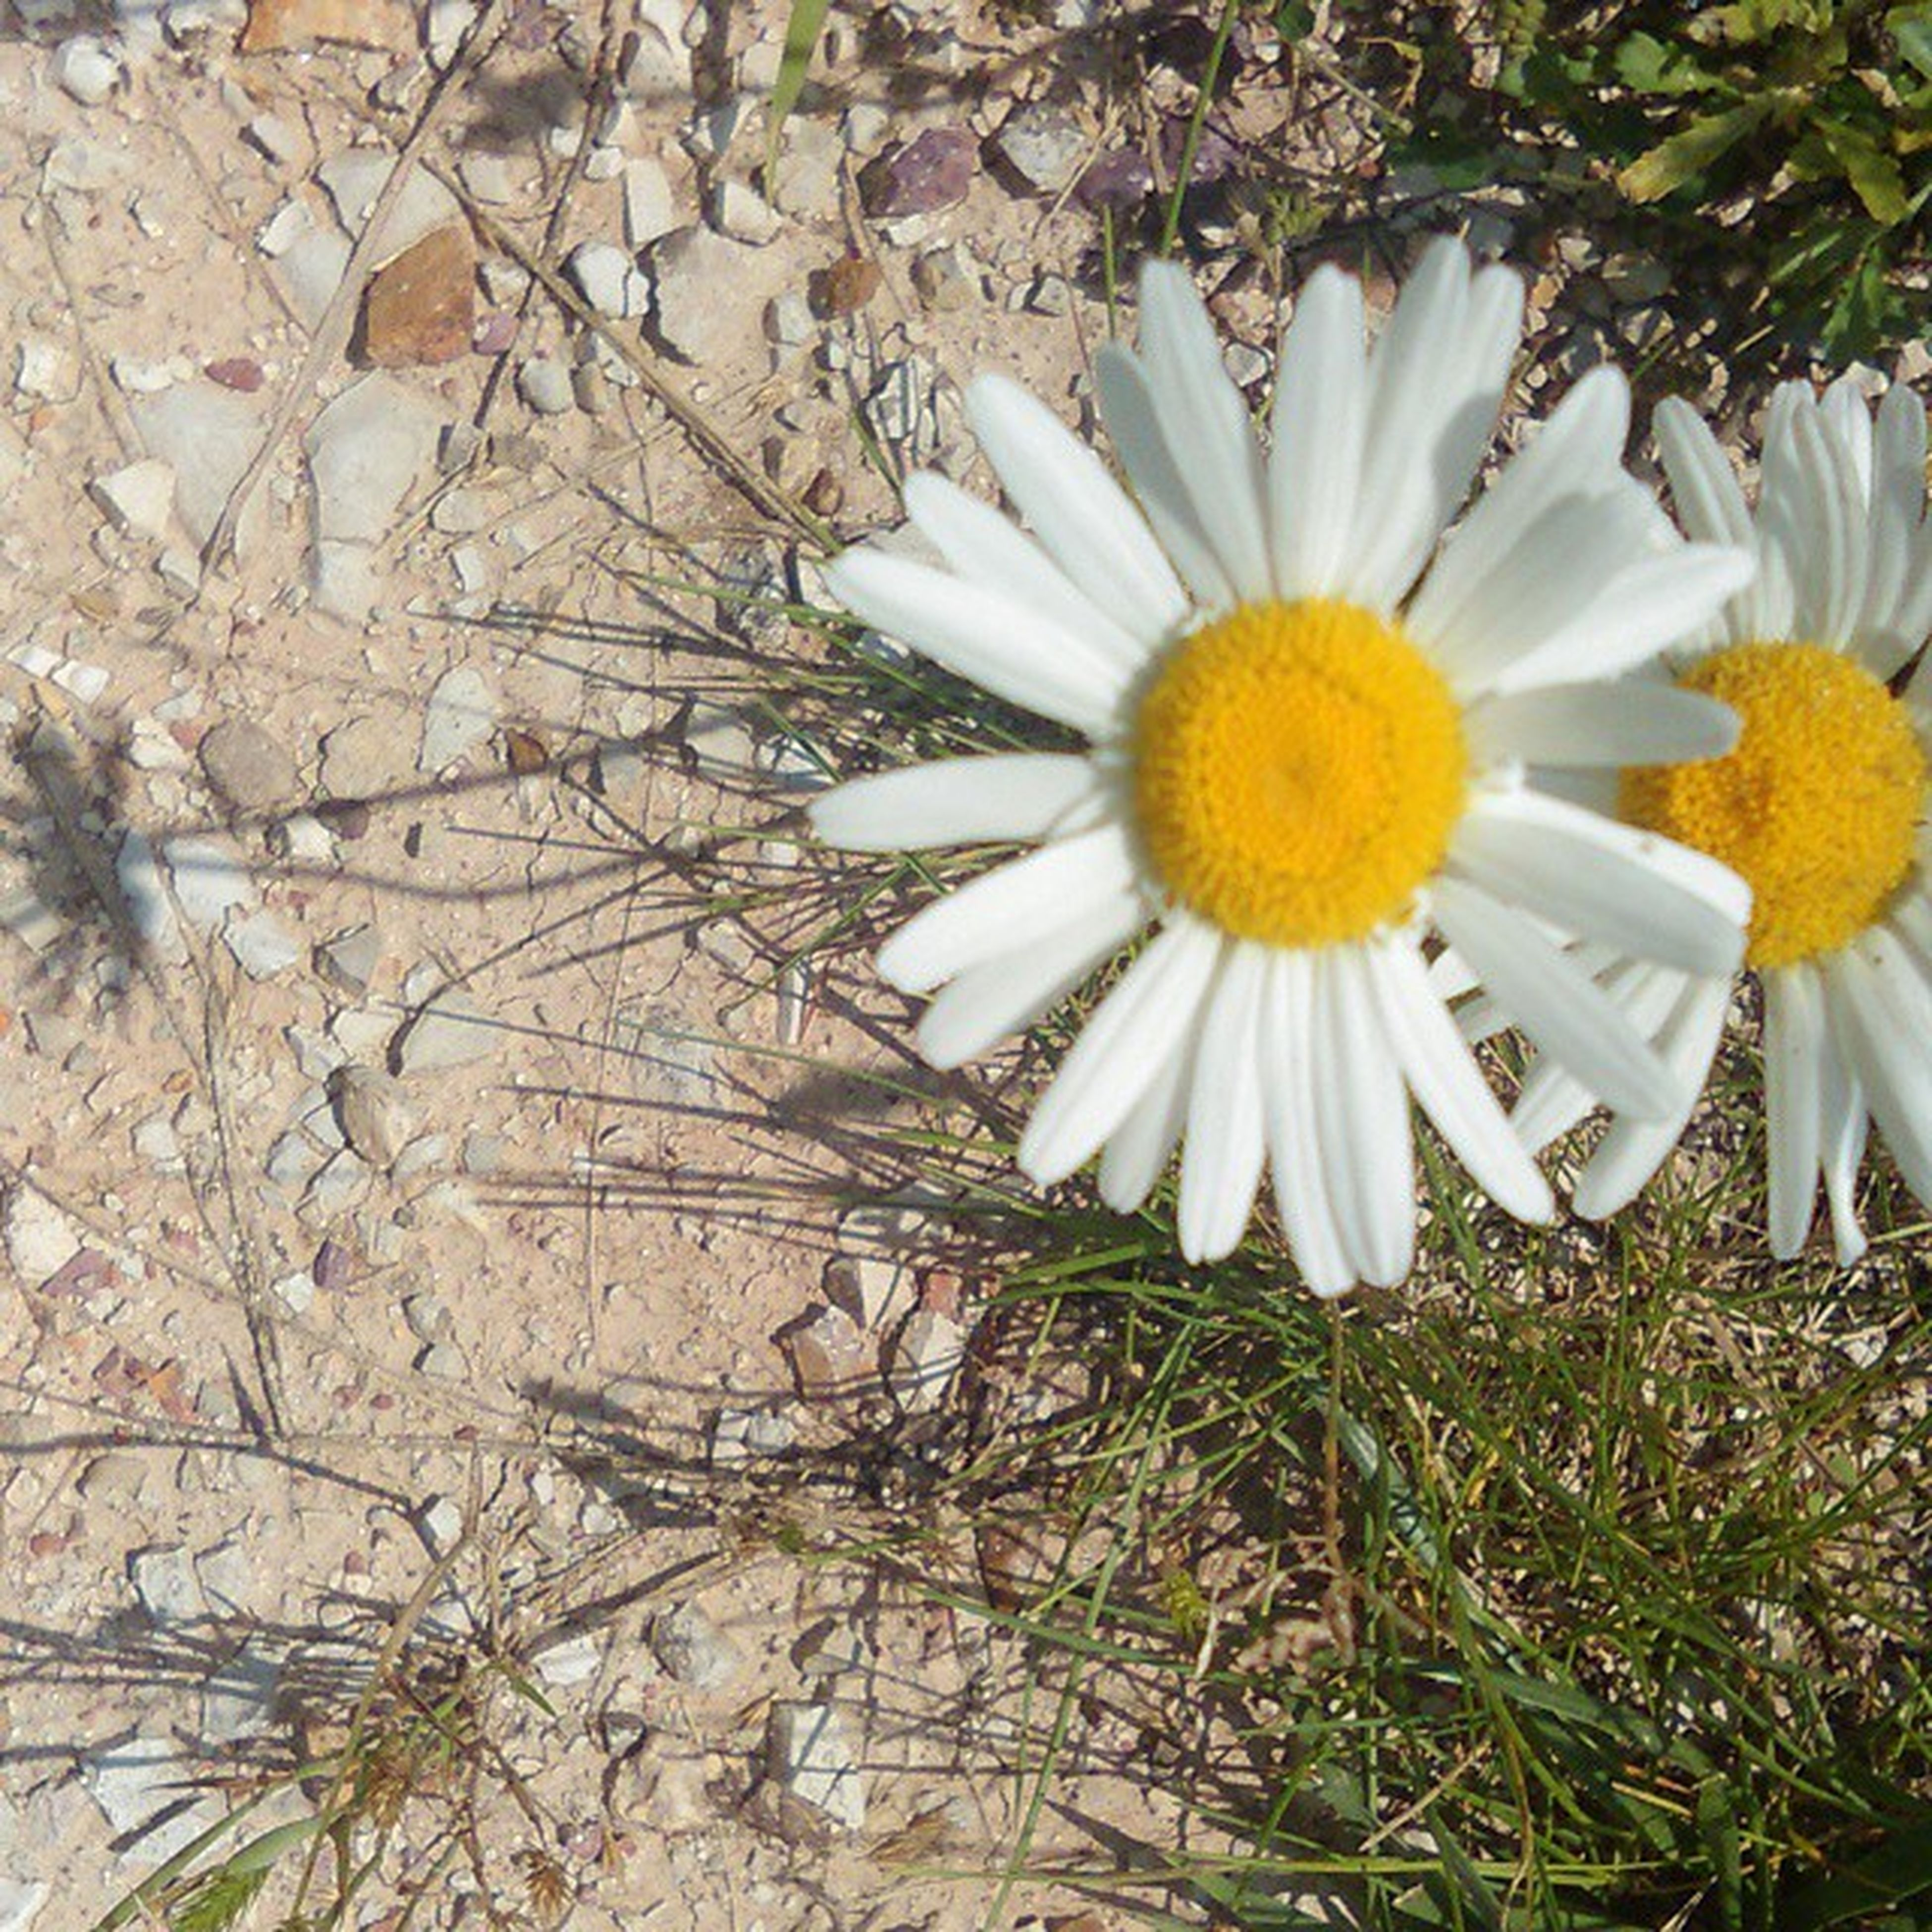 flower, petal, fragility, white color, flower head, freshness, high angle view, growth, plant, pollen, blooming, nature, daisy, field, beauty in nature, yellow, day, close-up, outdoors, in bloom